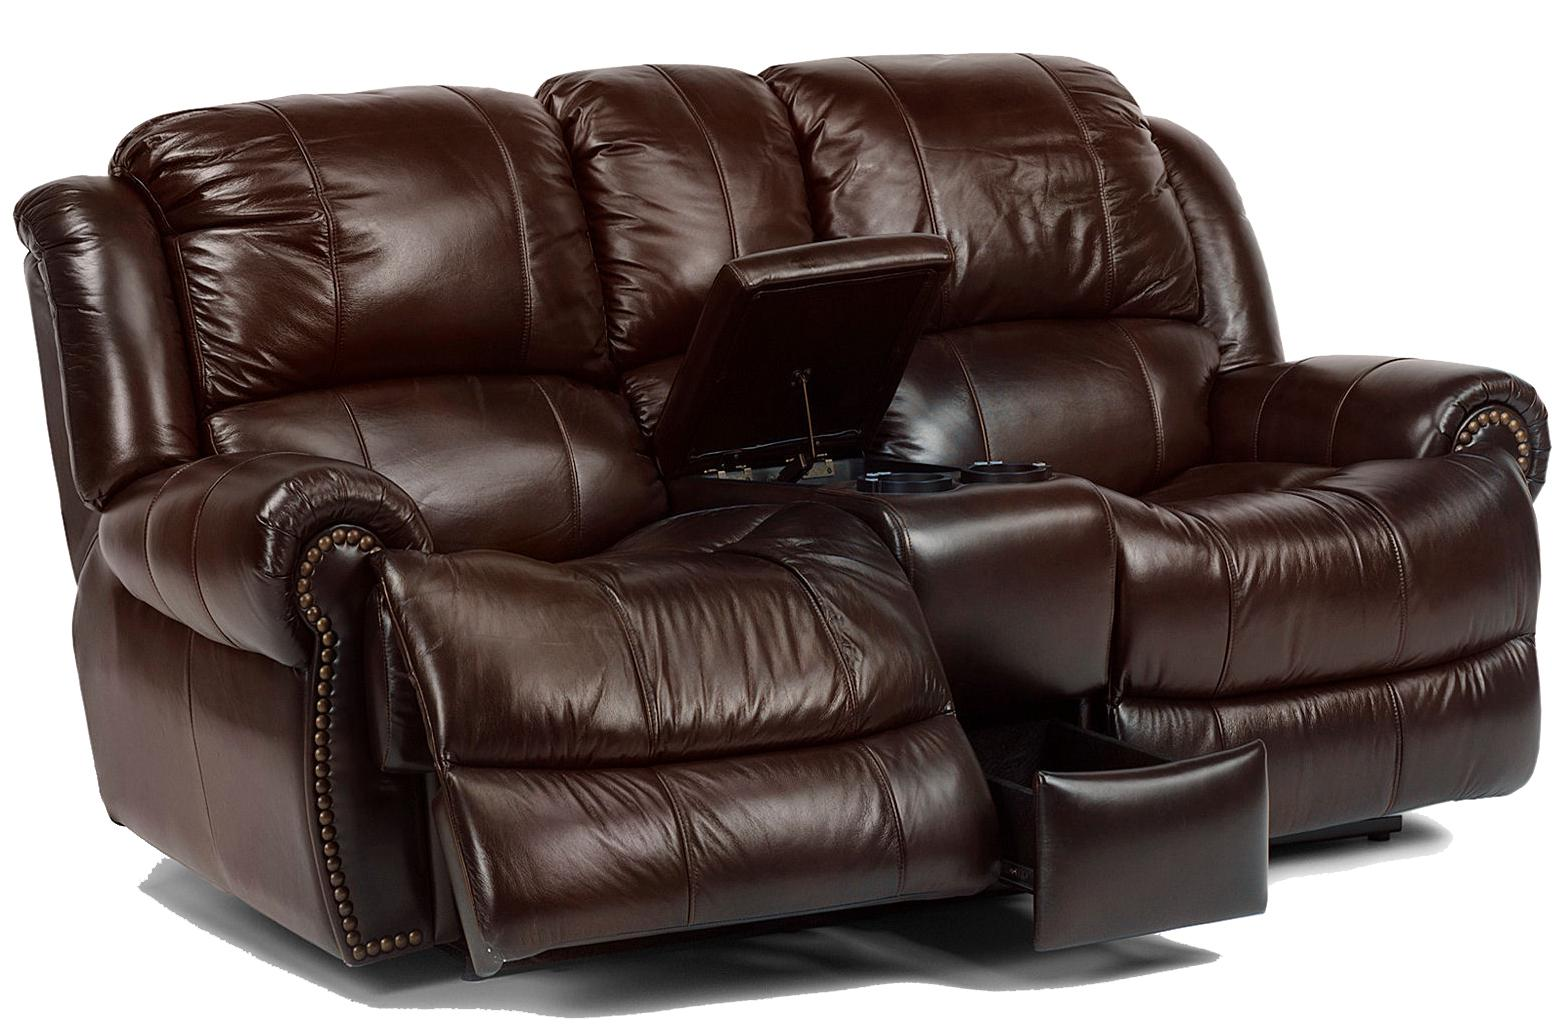 Flexsteel Latitudes - Capitol Power Love Seat with Console - Item Number: 1311-604P